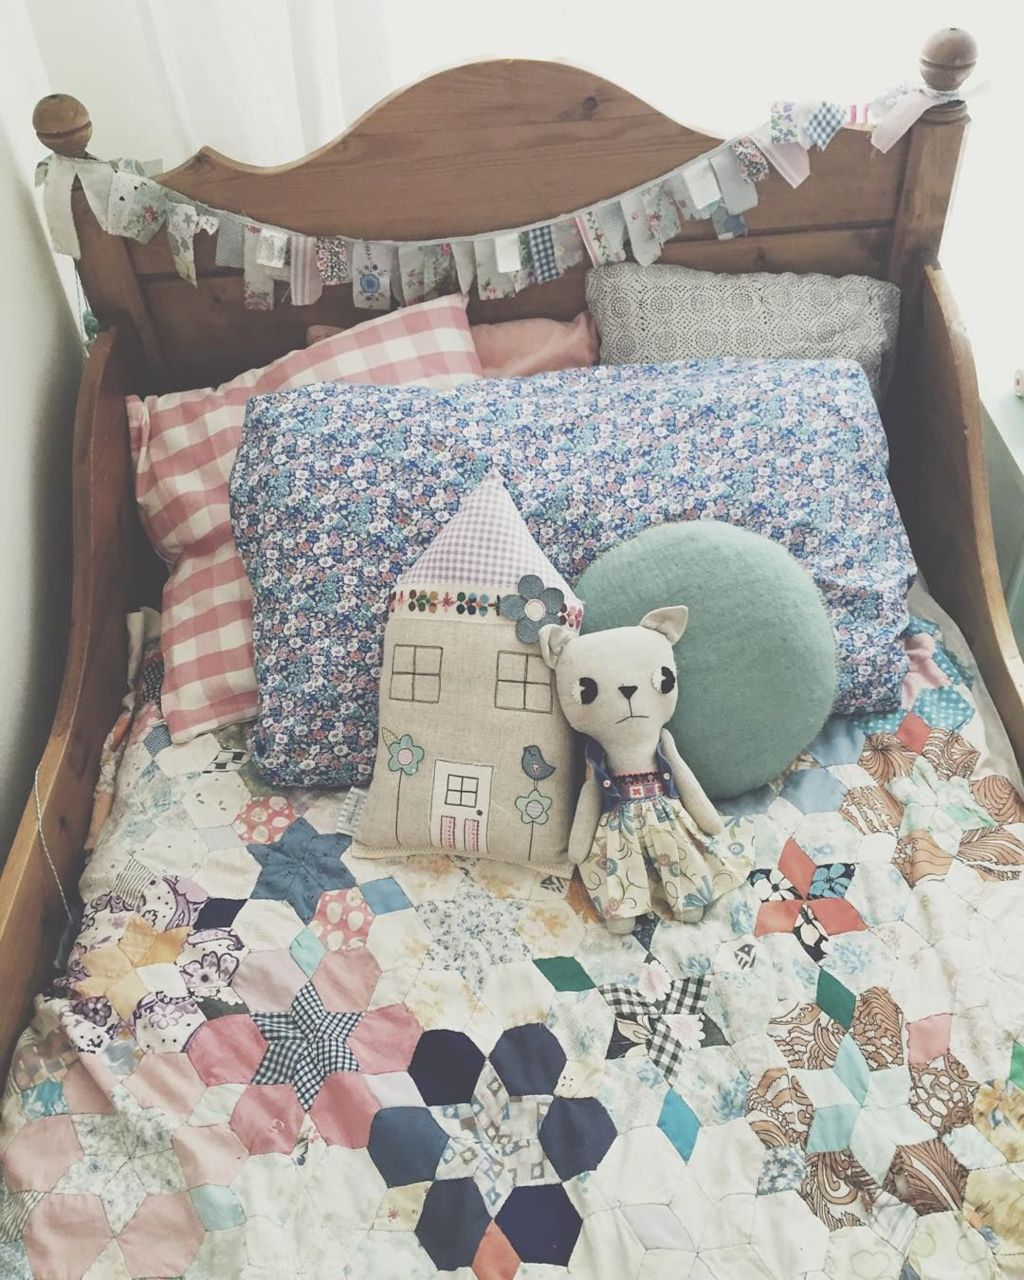 Best collection of inspirational kids bedroom decor schemes that feature beautiful pastel color palettes and unisex kids room ideas Image 9